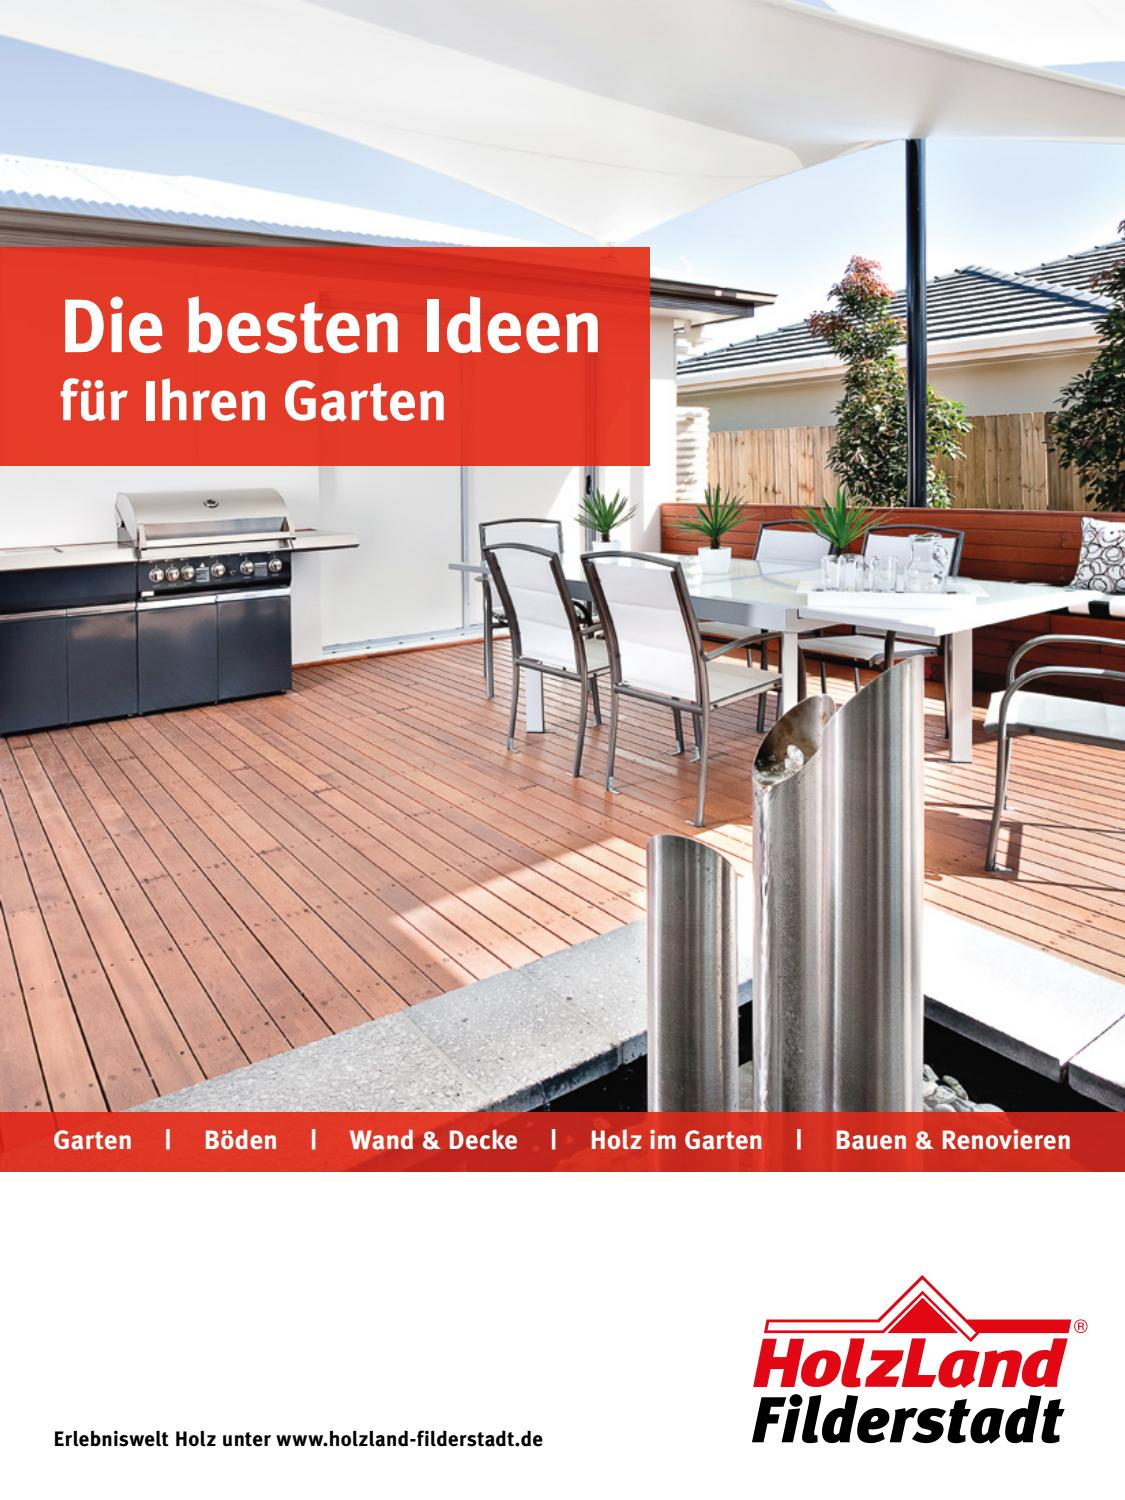 Holzland Filderstadt 2017 By Kaiser Design Issuu